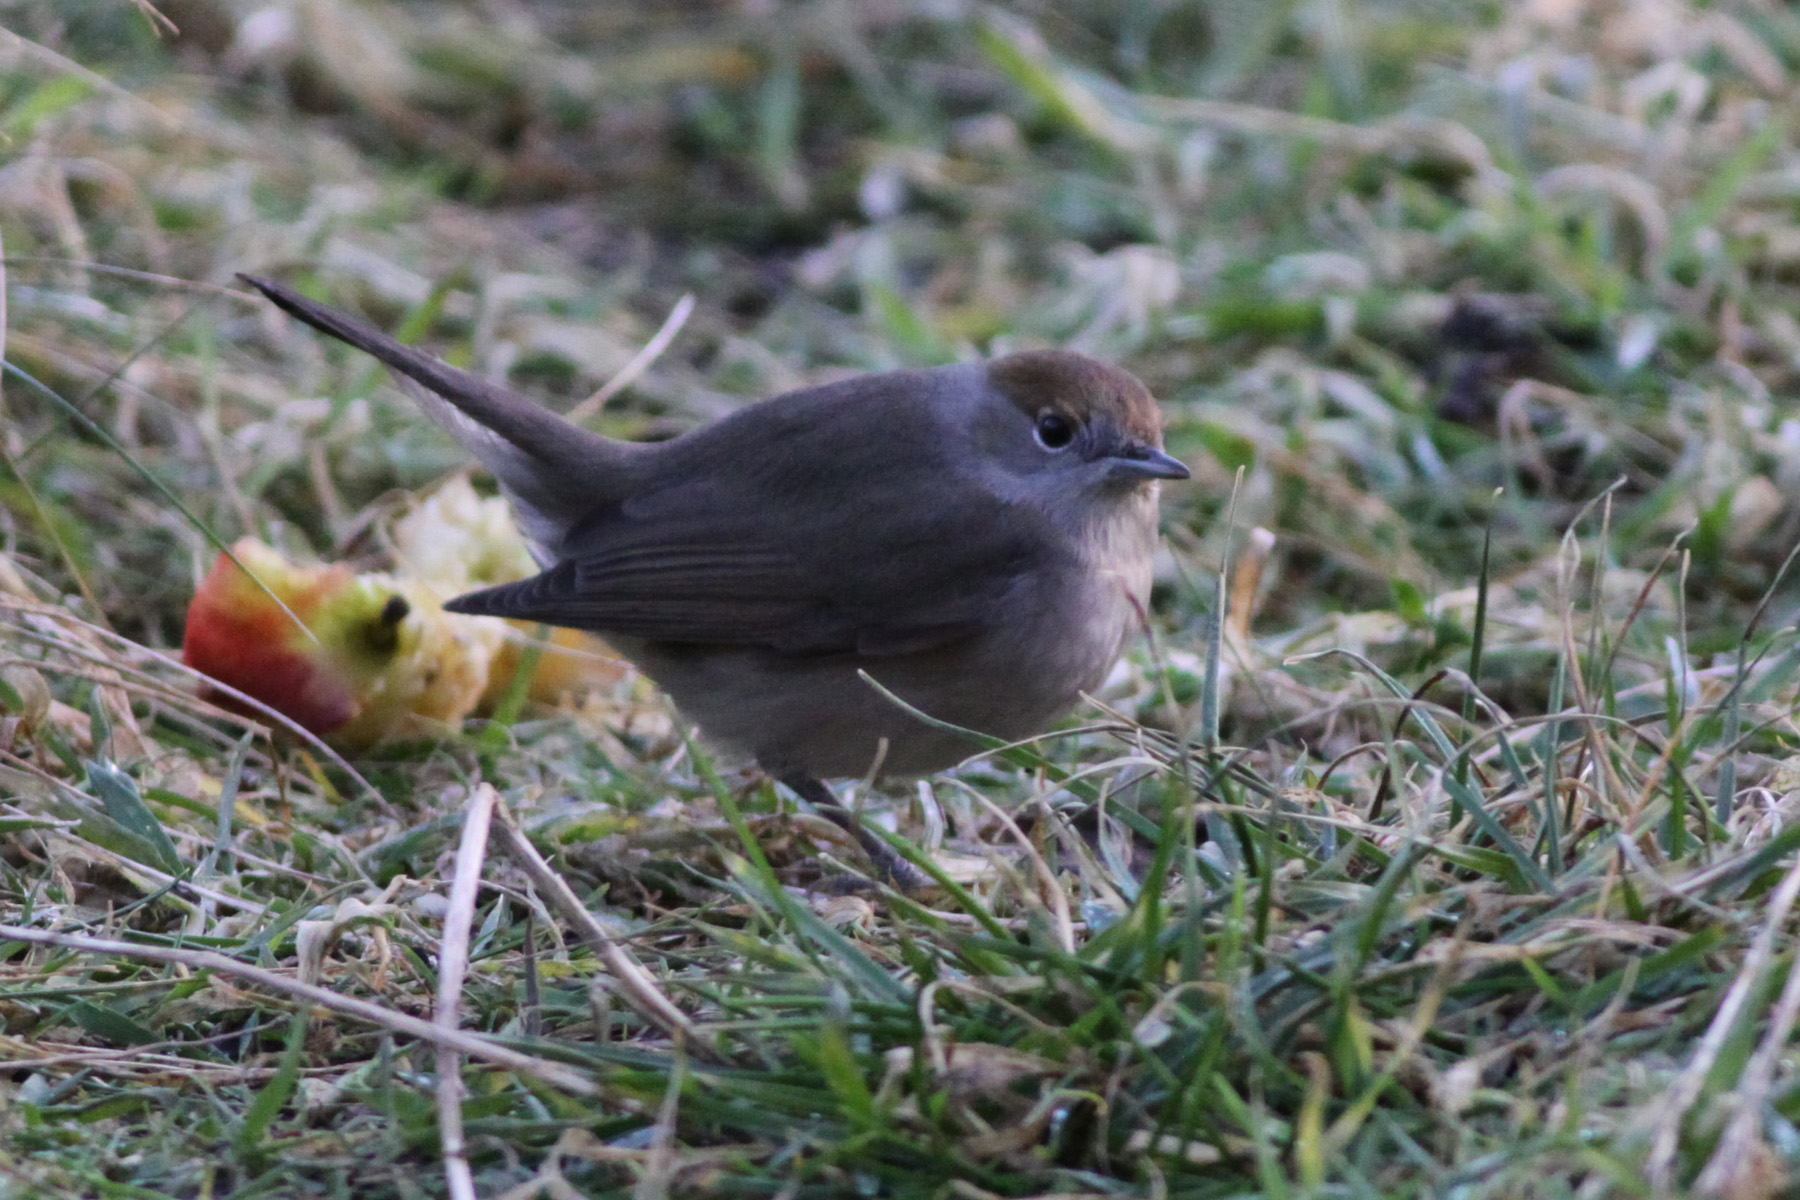 b2b748fa0 ... 2 Carrion Crow, Blackcap (Fair Isle's latest ever record was a female  at the Obs on 21st), 6 Fieldfare, Song Thrush, just small numbers of  Blackbird and ...